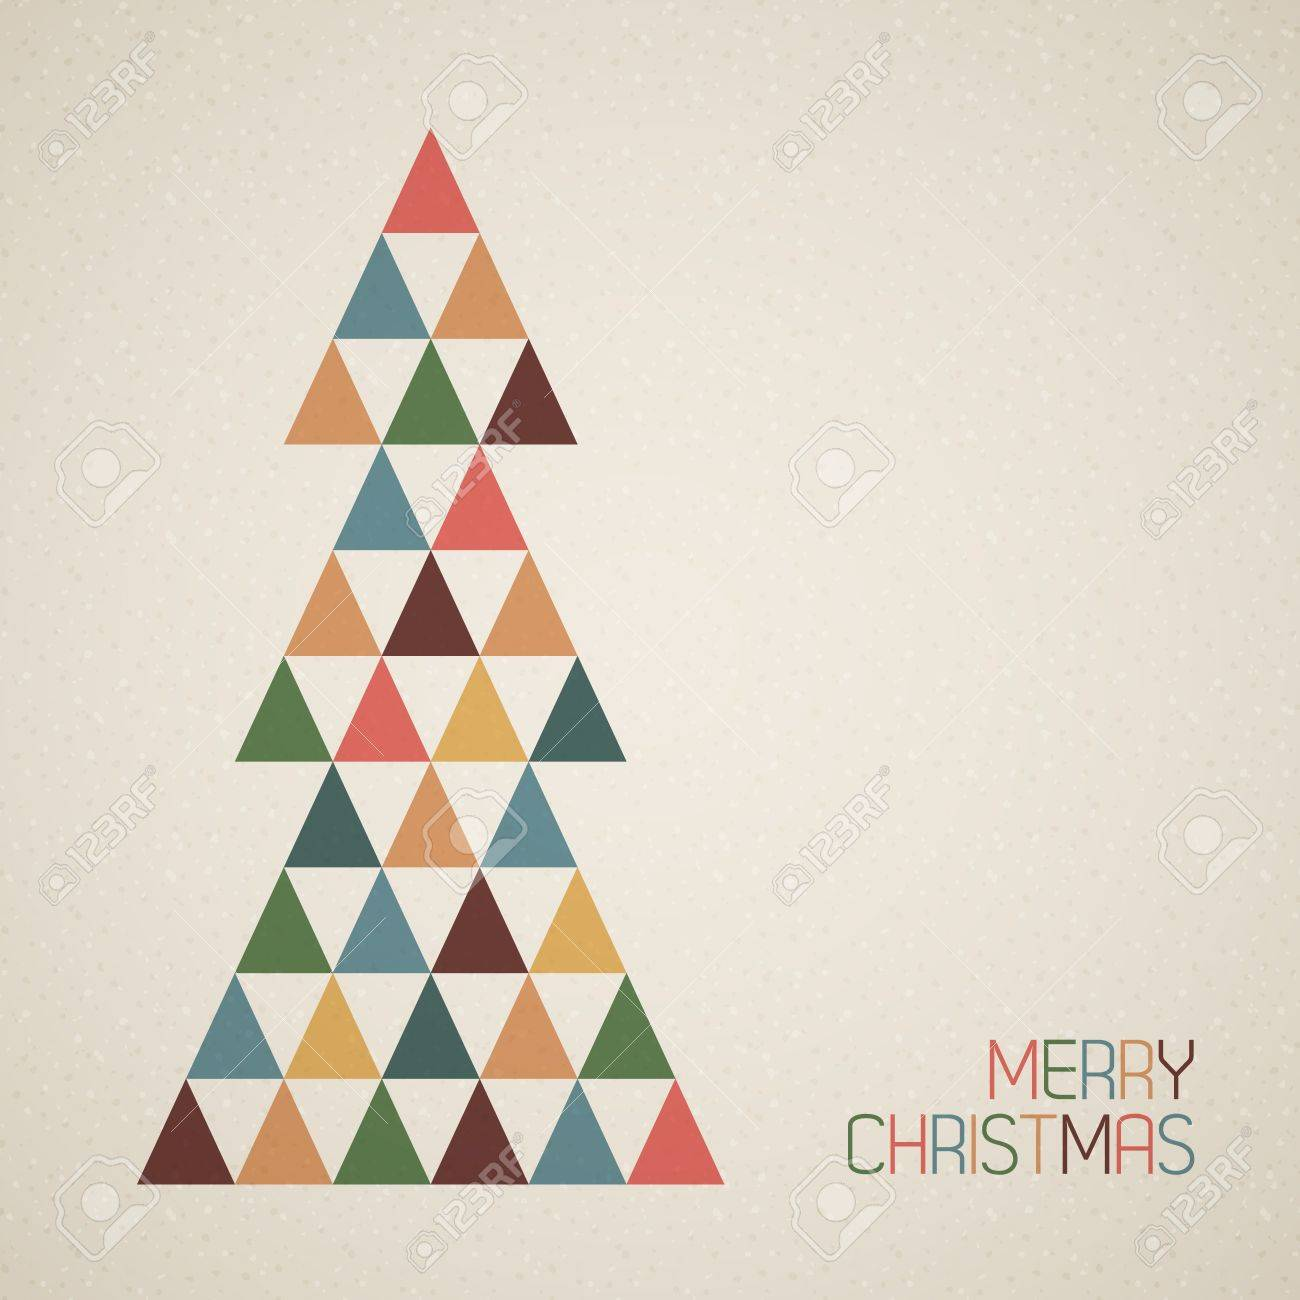 Vintage Retro Vector Grunge Christmas Tree Made From Triangles